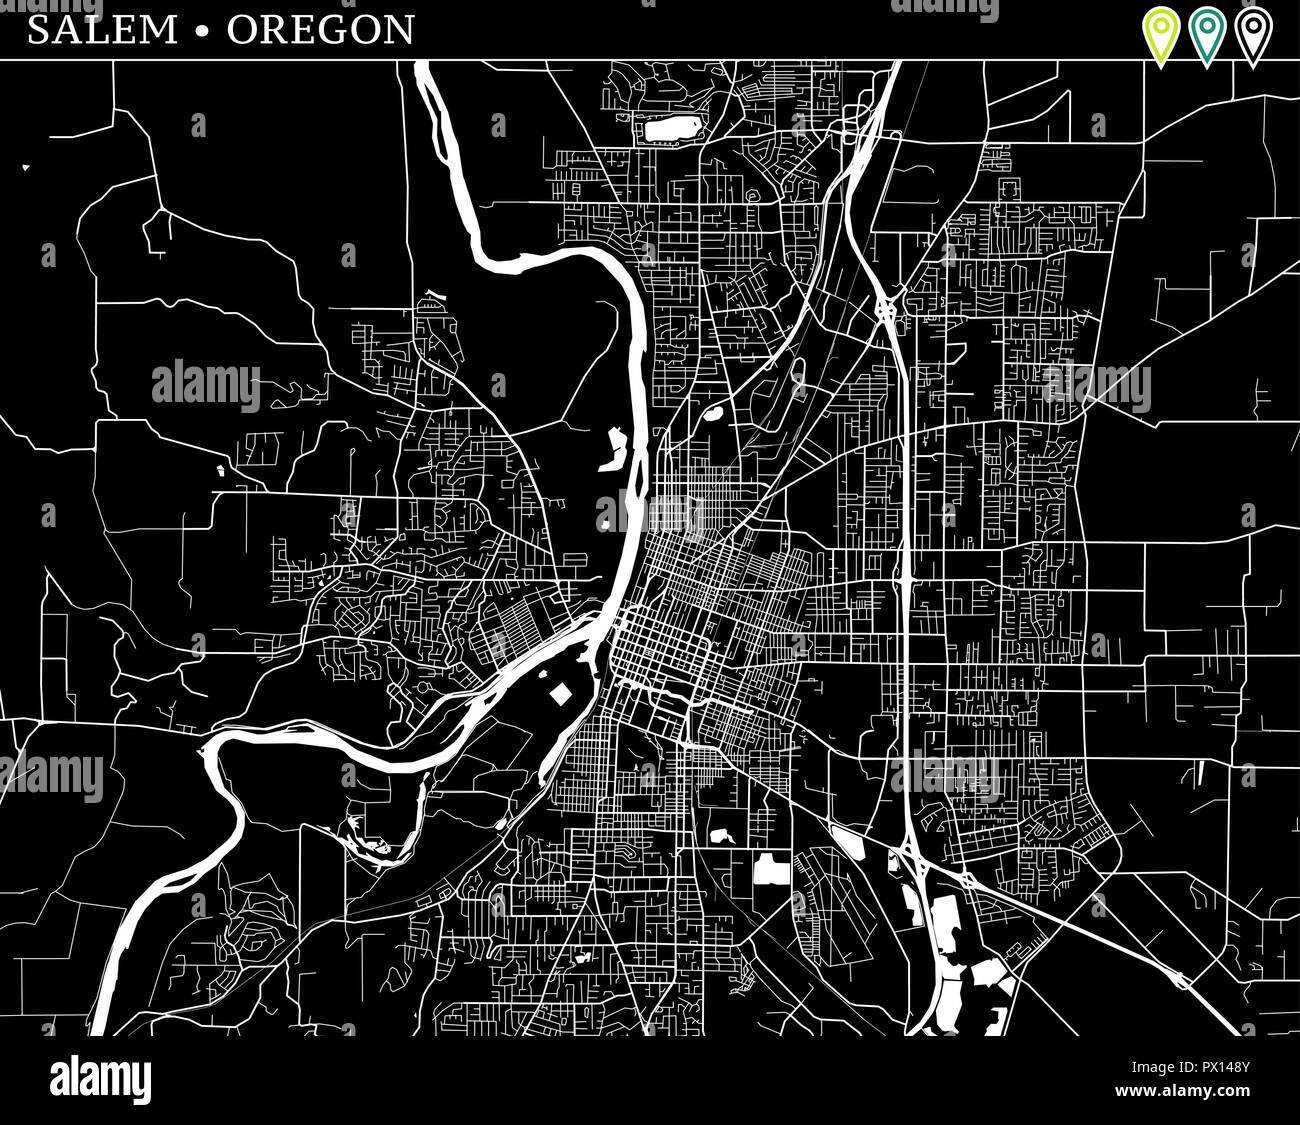 Simple map of Salem, Oregon, USA. Black and white version for ...